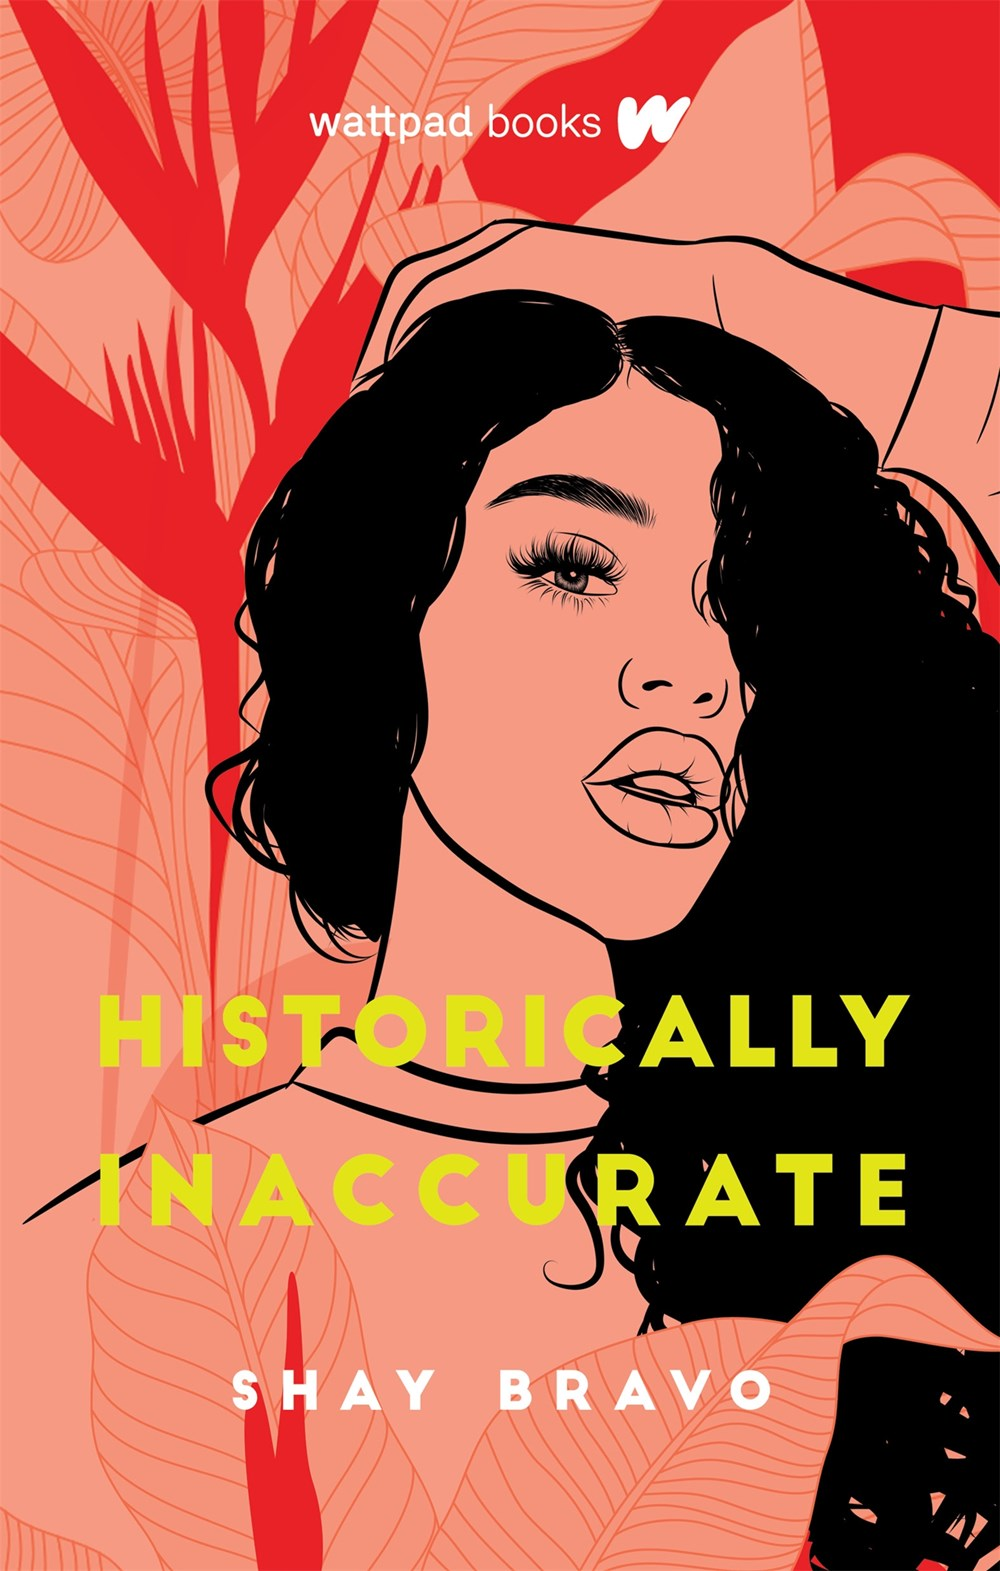 Historically Inaccurate By Shay Bravo Release Date? 2020 YA Contemporary Releases